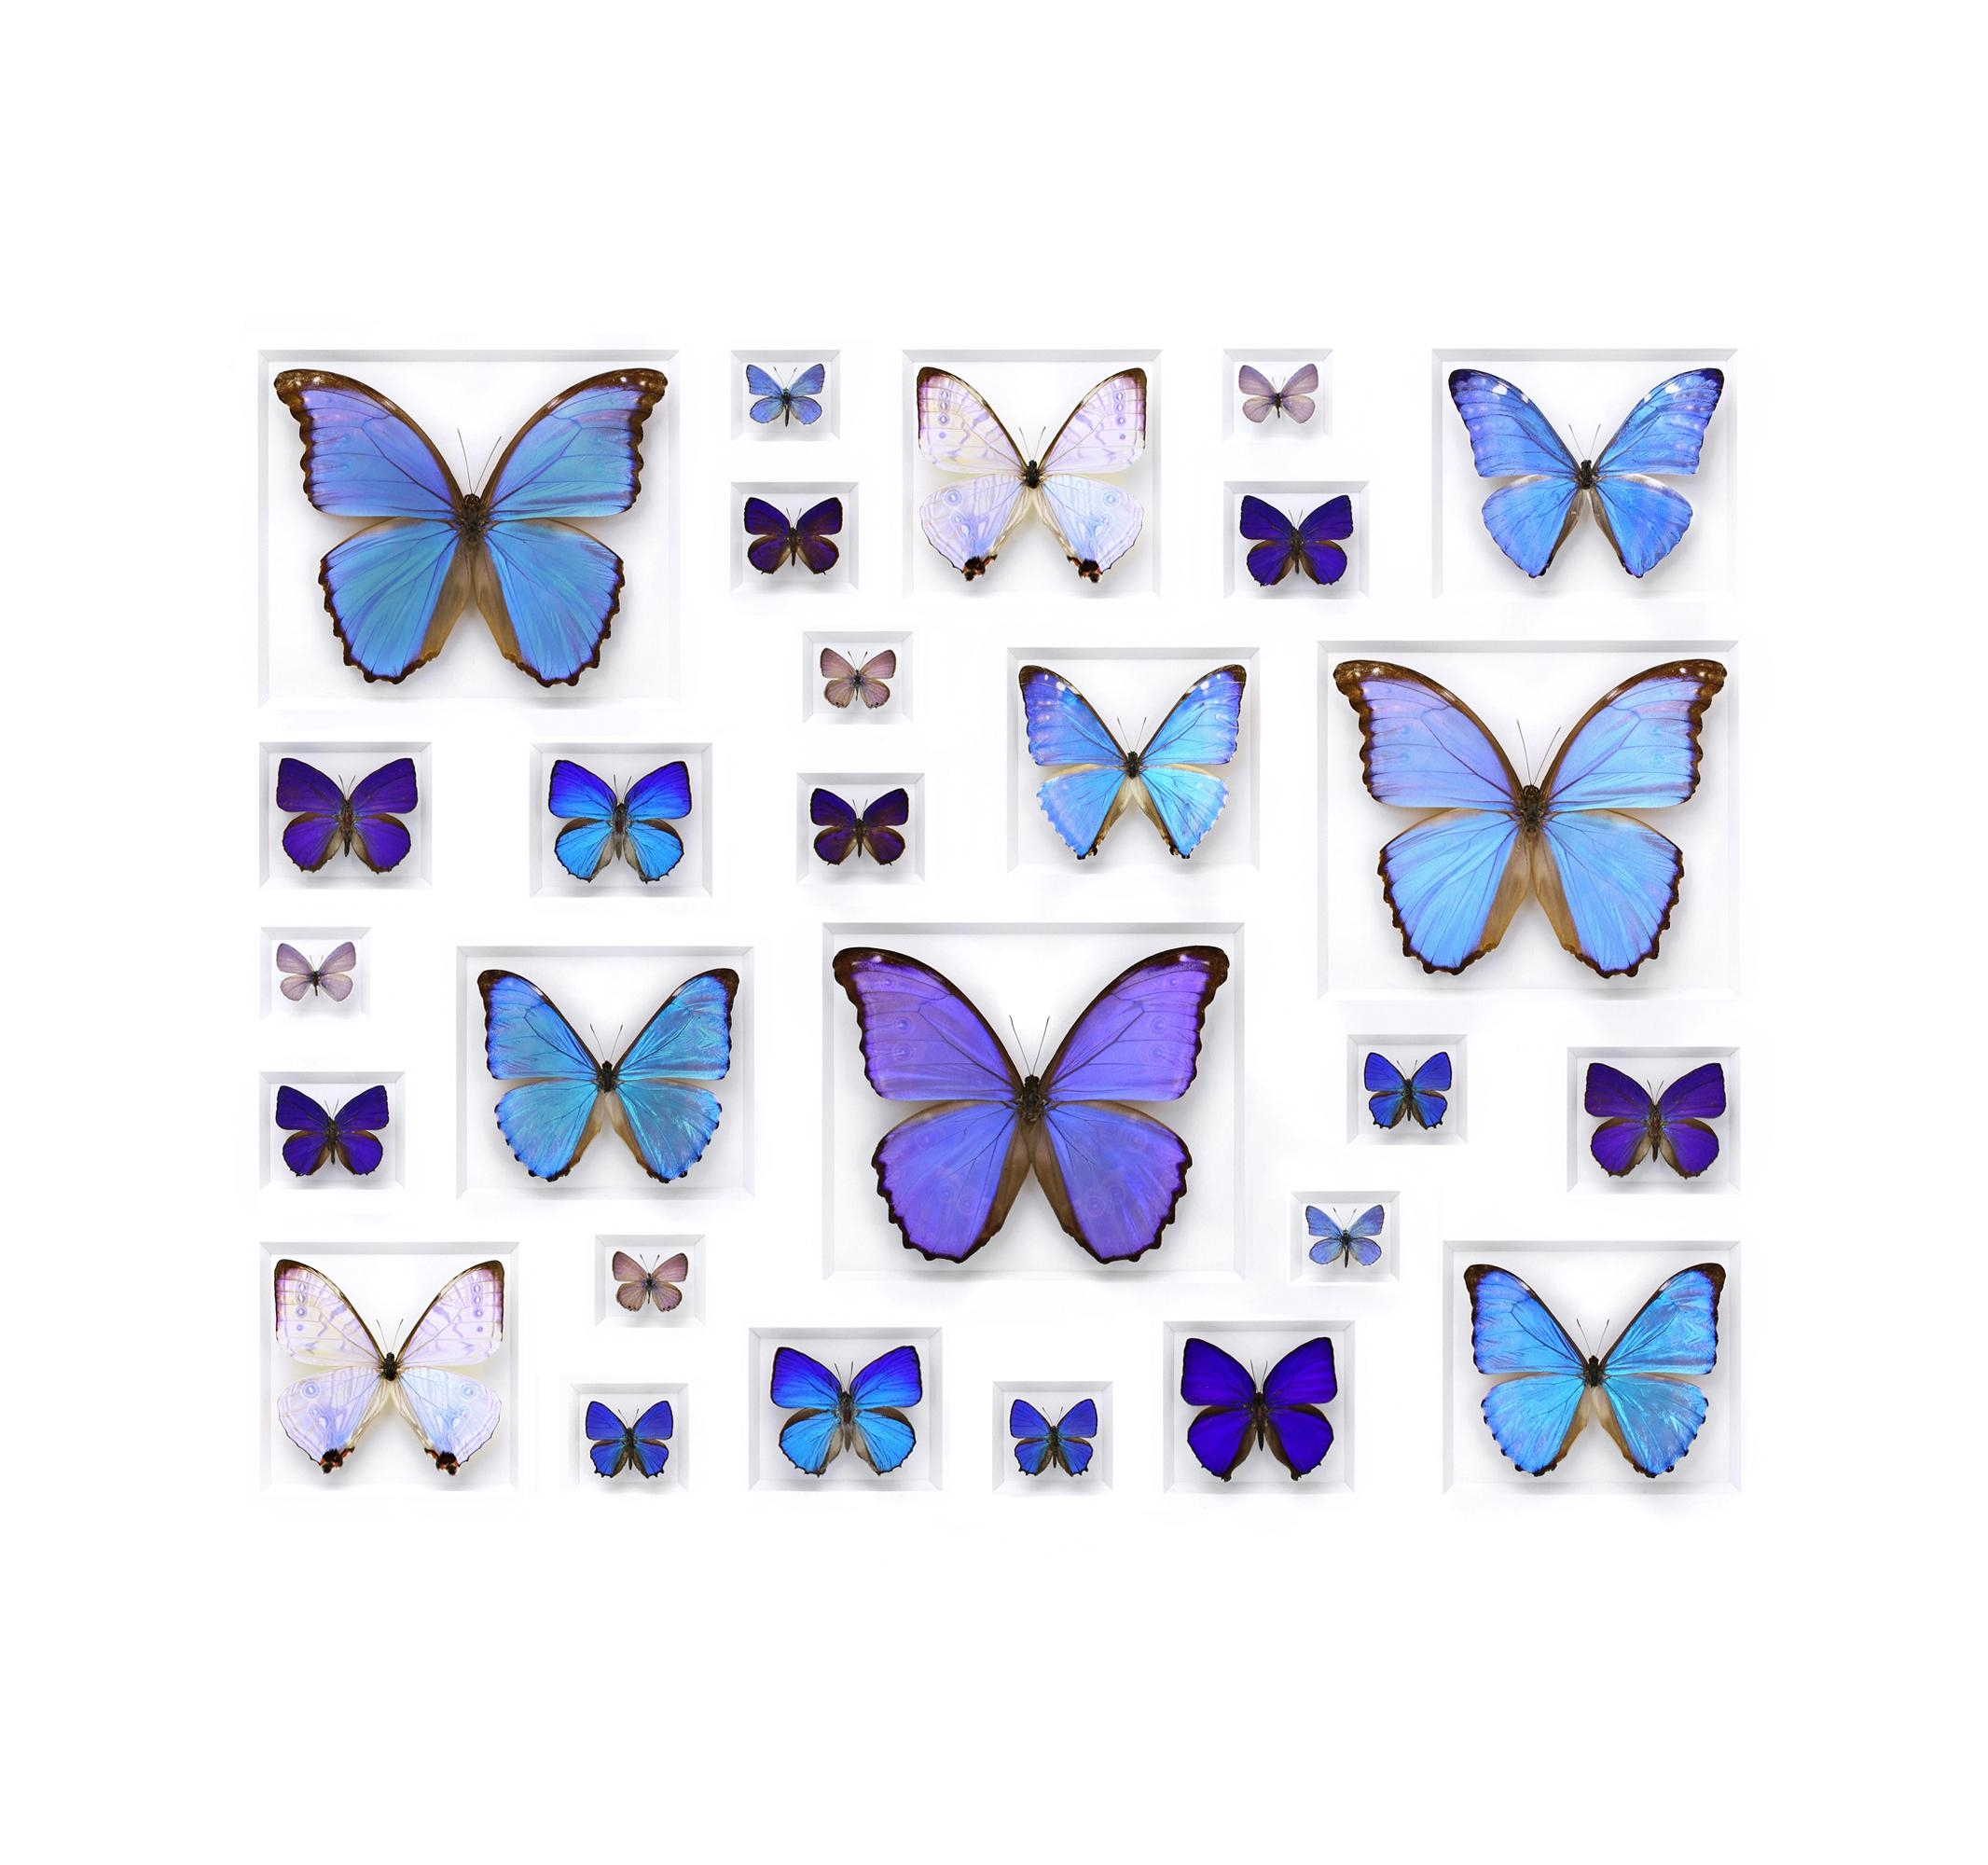 Pheromone Design | Christopher Marley Studio Throughout 3D Butterfly Framed Wall Art (Image 16 of 20)